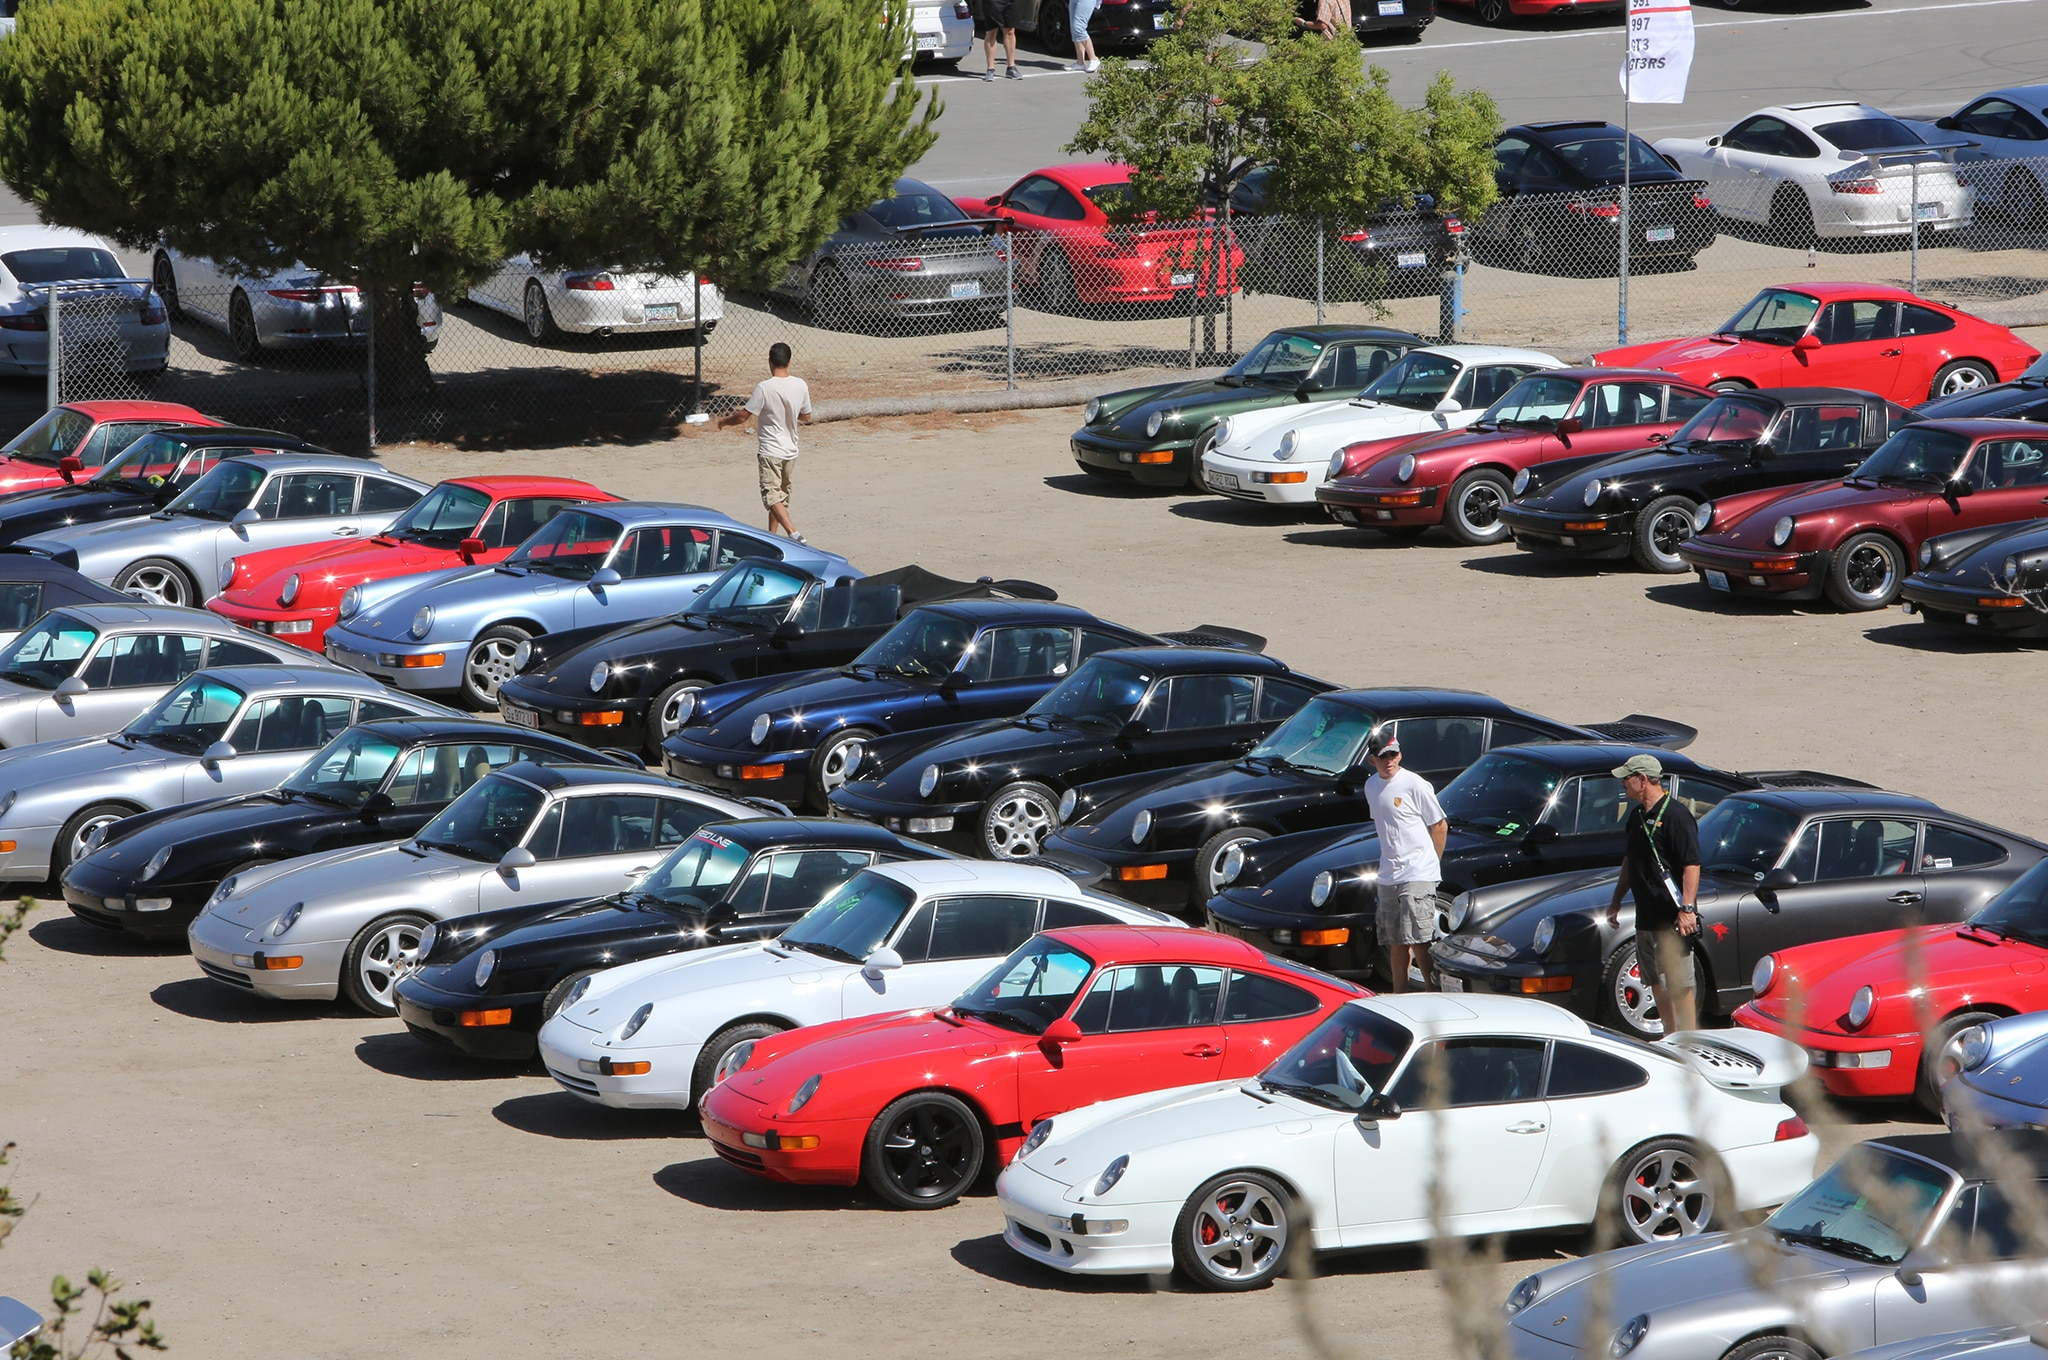 25. The parking lot was jammed with Porsches ranging from 356s to 991s. Smallest parking lot? The one with the front-engine sports cars.